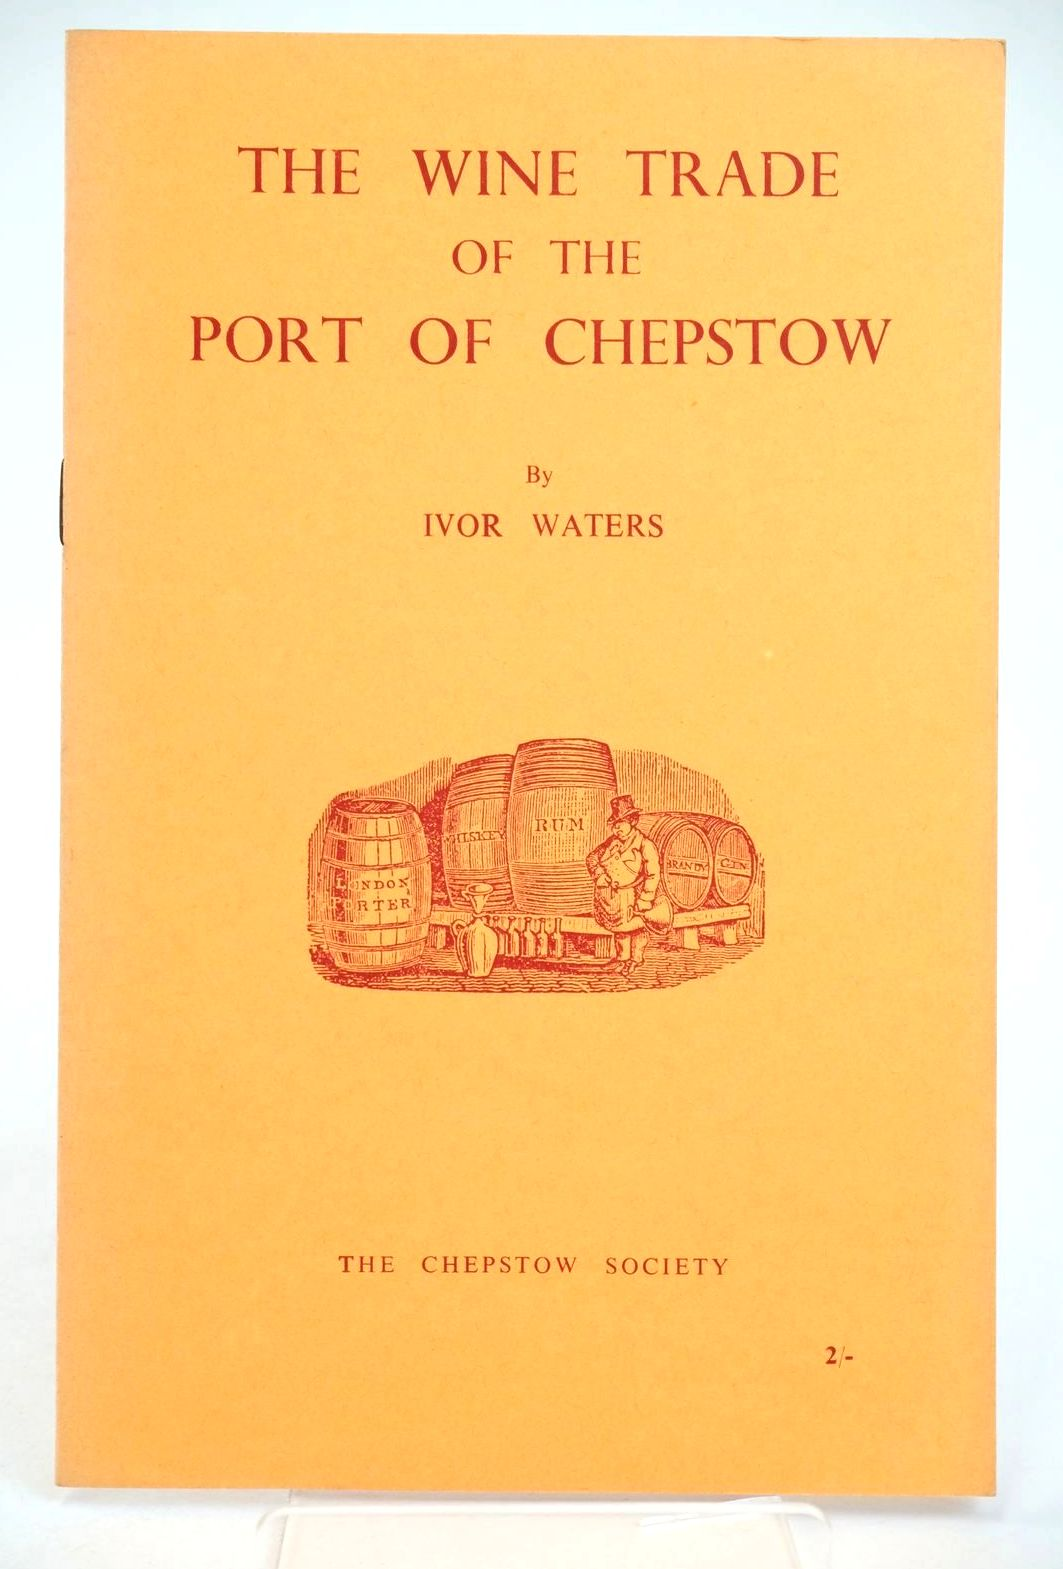 Photo of THE WINE TRADE OF THE PORT OF CHEPSTOW written by Waters, Ivor published by The Chepstow Society (STOCK CODE: 1318977)  for sale by Stella & Rose's Books